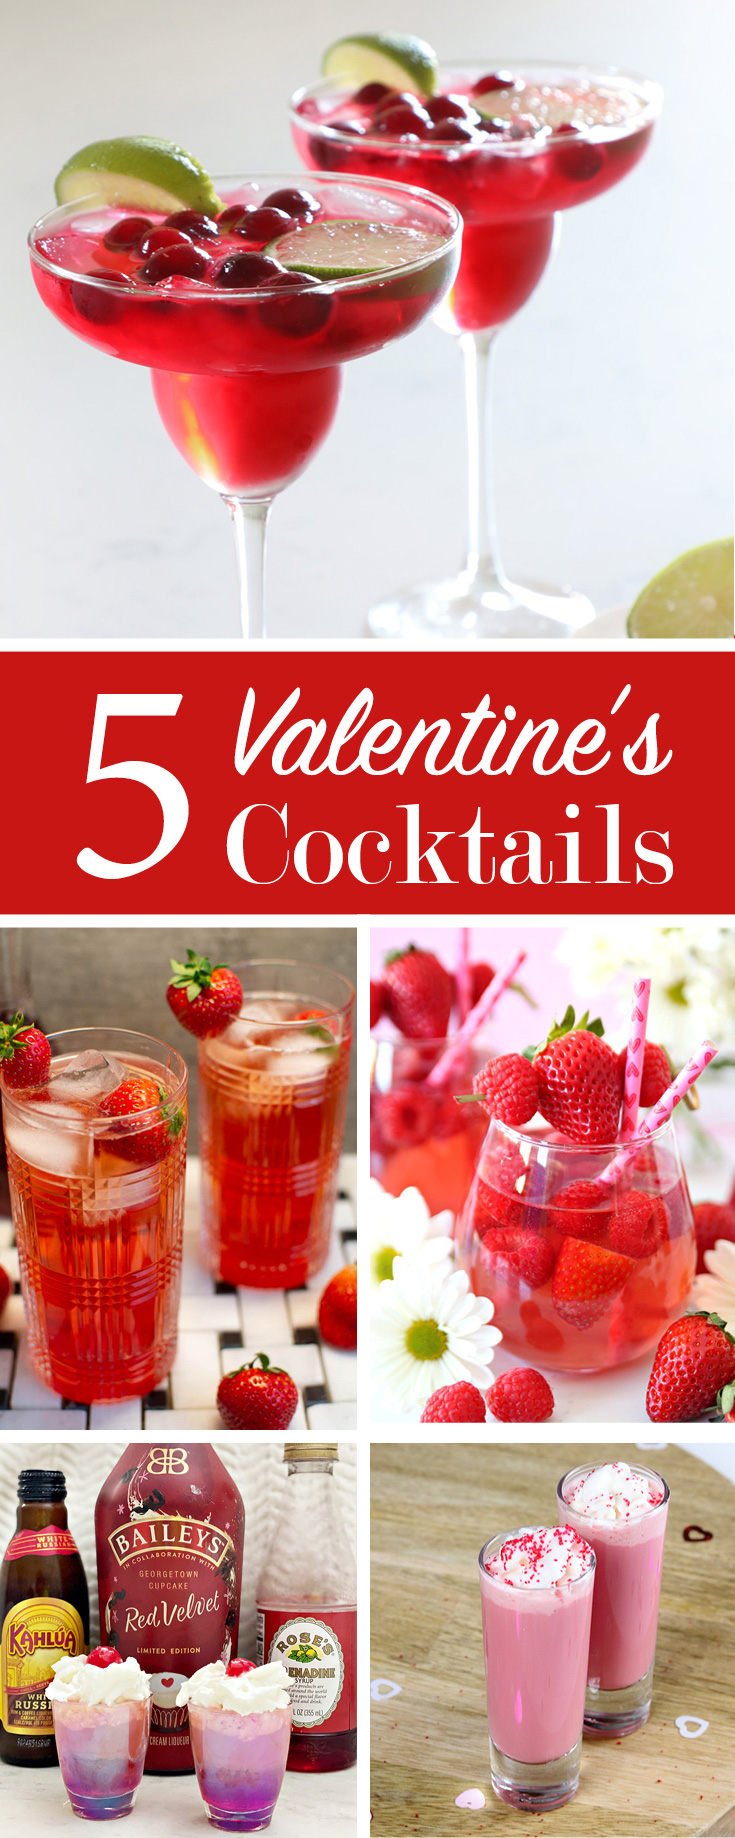 "Valentine""s Day Cocktail Collection"